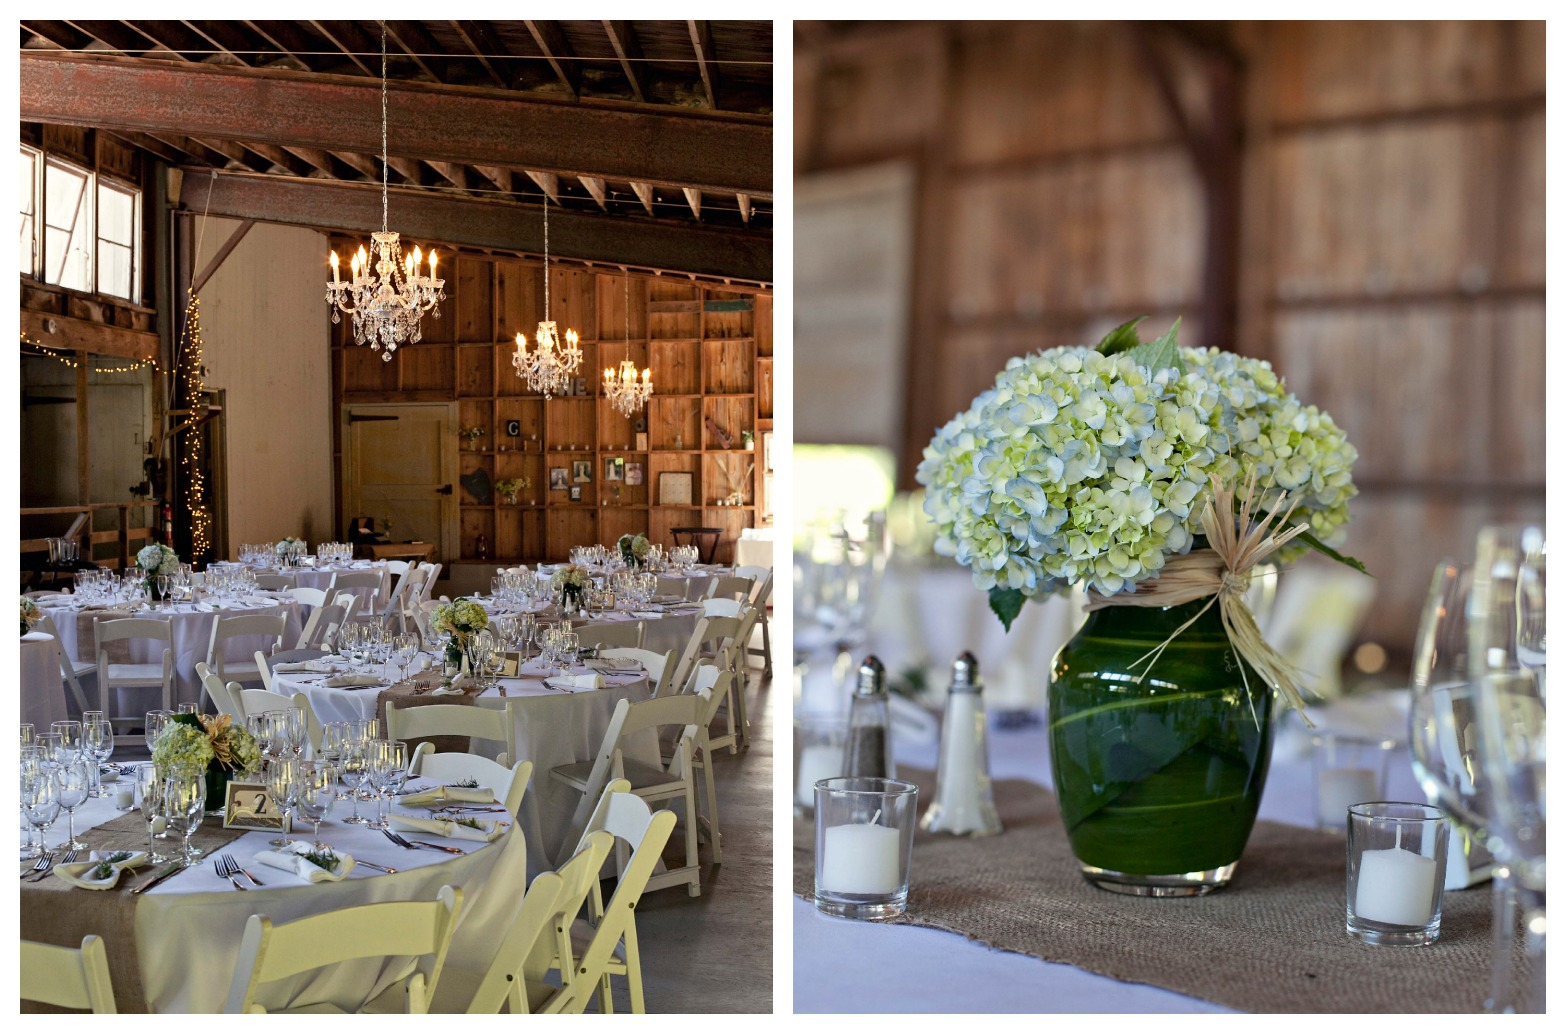 Elegant Country Rustic Connecticut Barn Wedding - Rustic ...